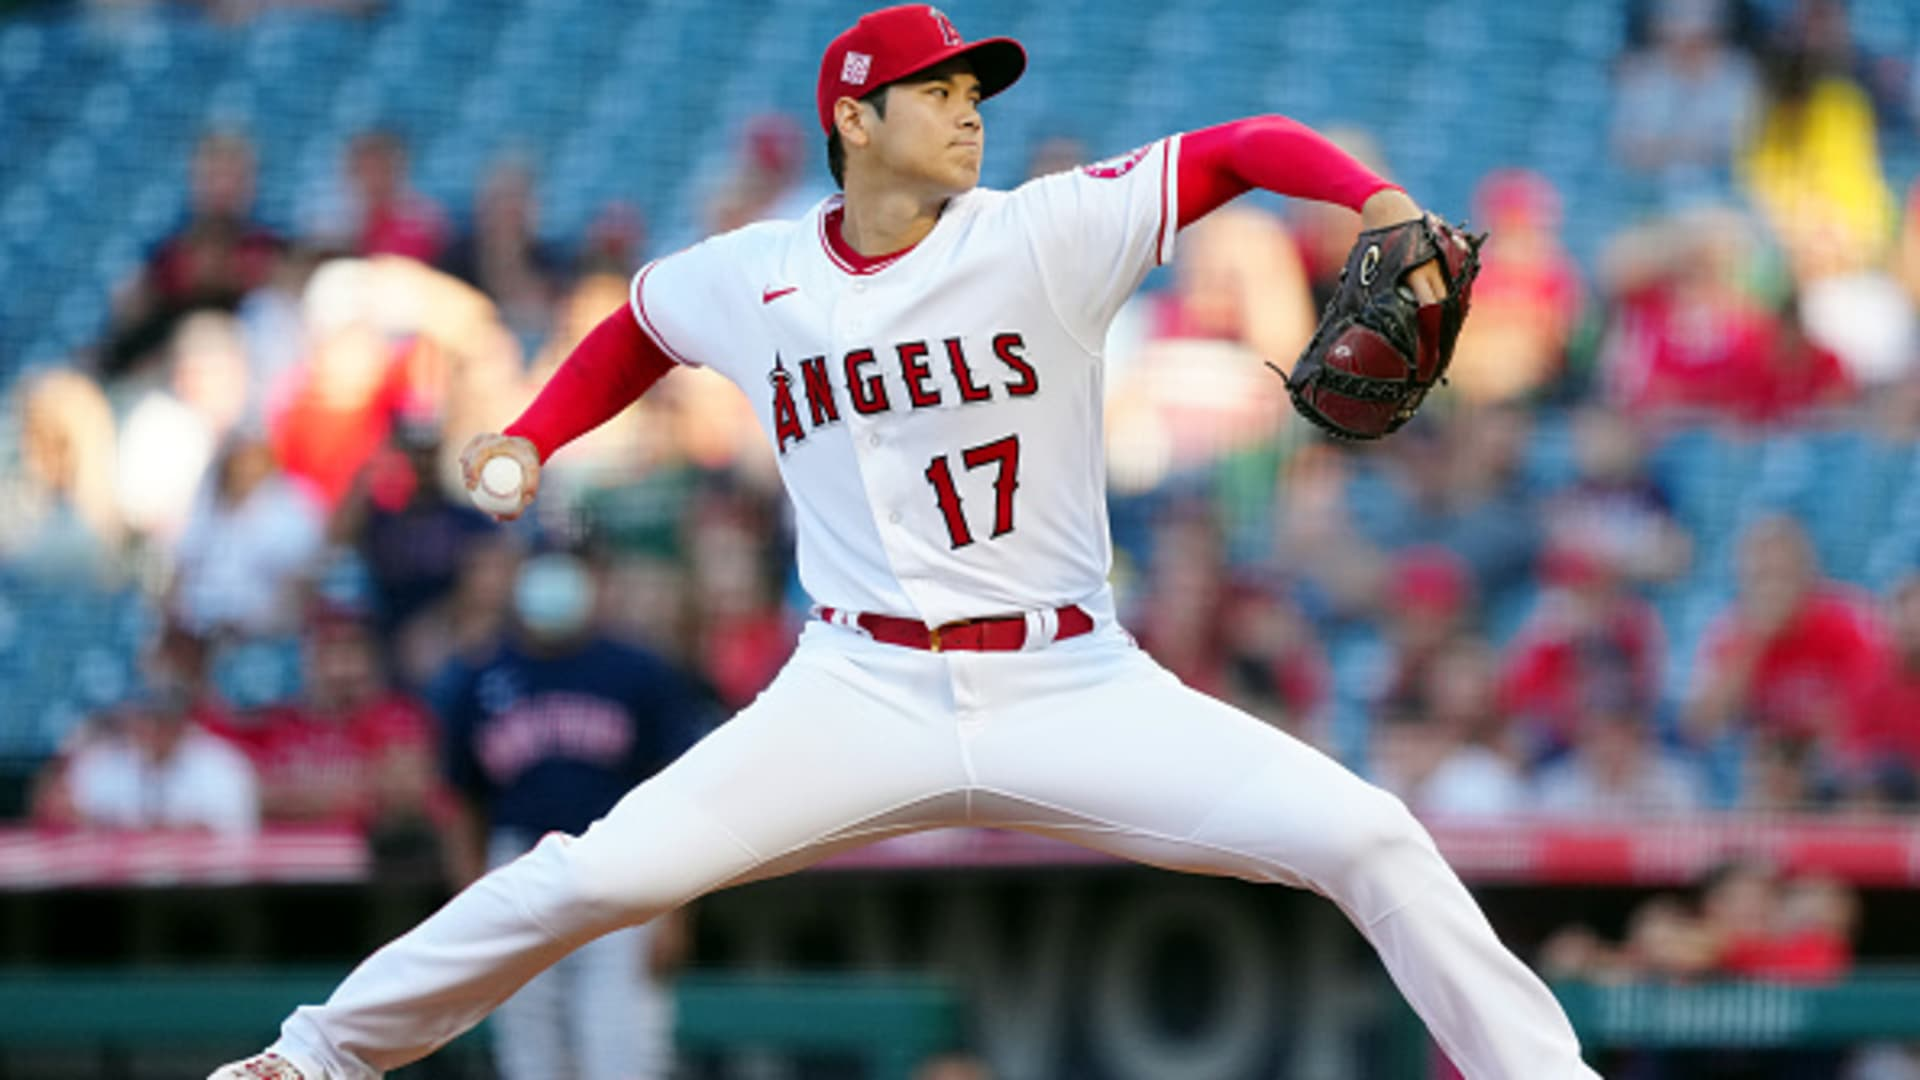 Shohei Ohtani #17 of the Los Angeles Angels pitches during the game between the Boston Red Sox and the Los Angeles Angels at Angel Stadium on Tuesday, July 6, 2021 in Anaheim, California.